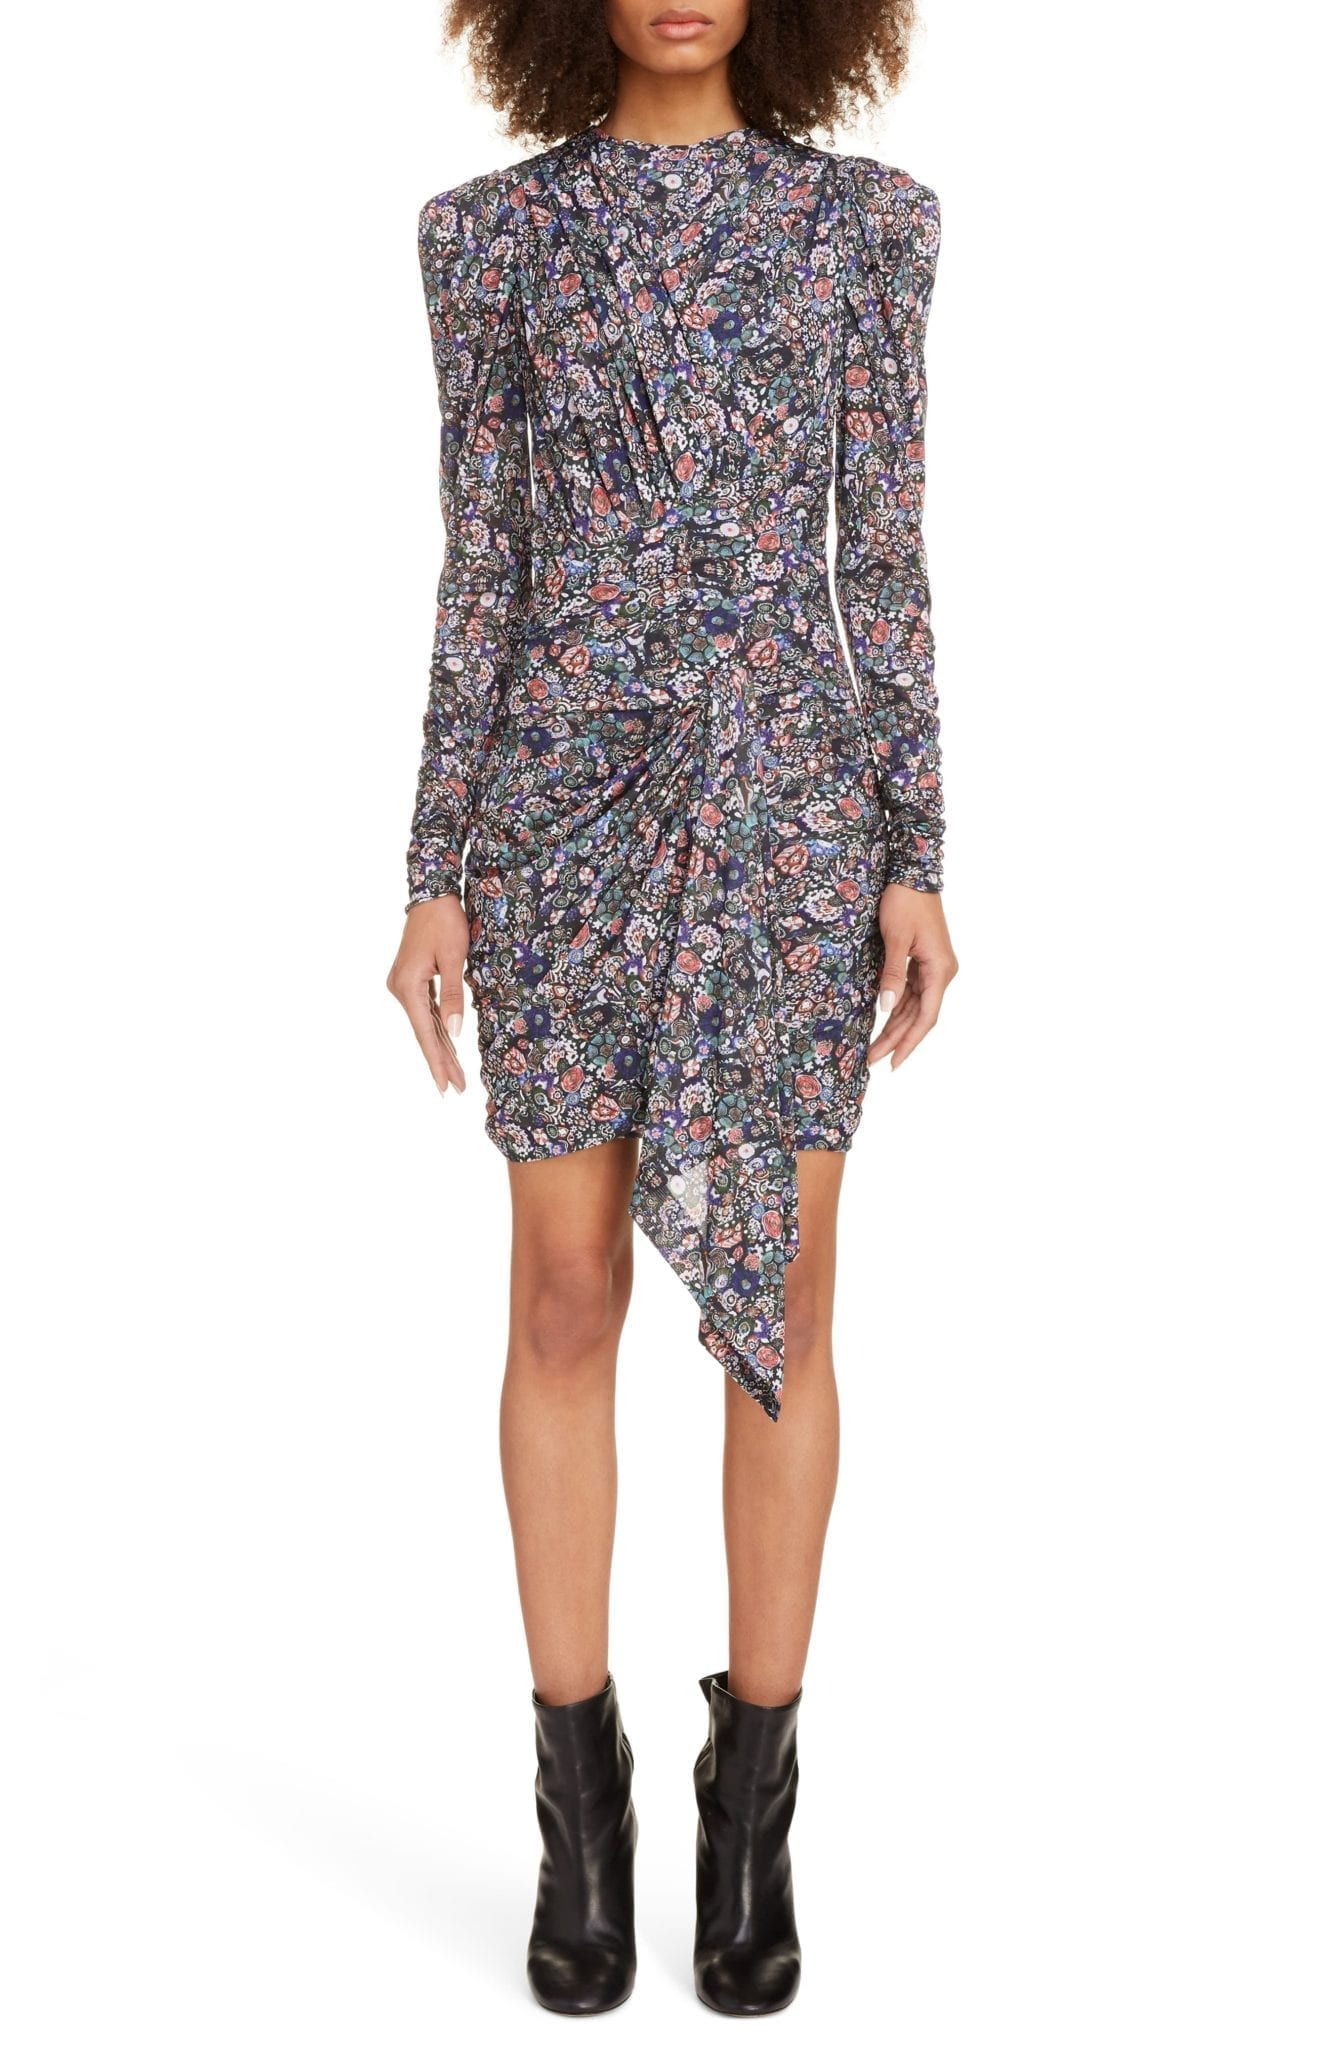 ISABEL MARANT Puff Shoulder Long Sleeve Dress